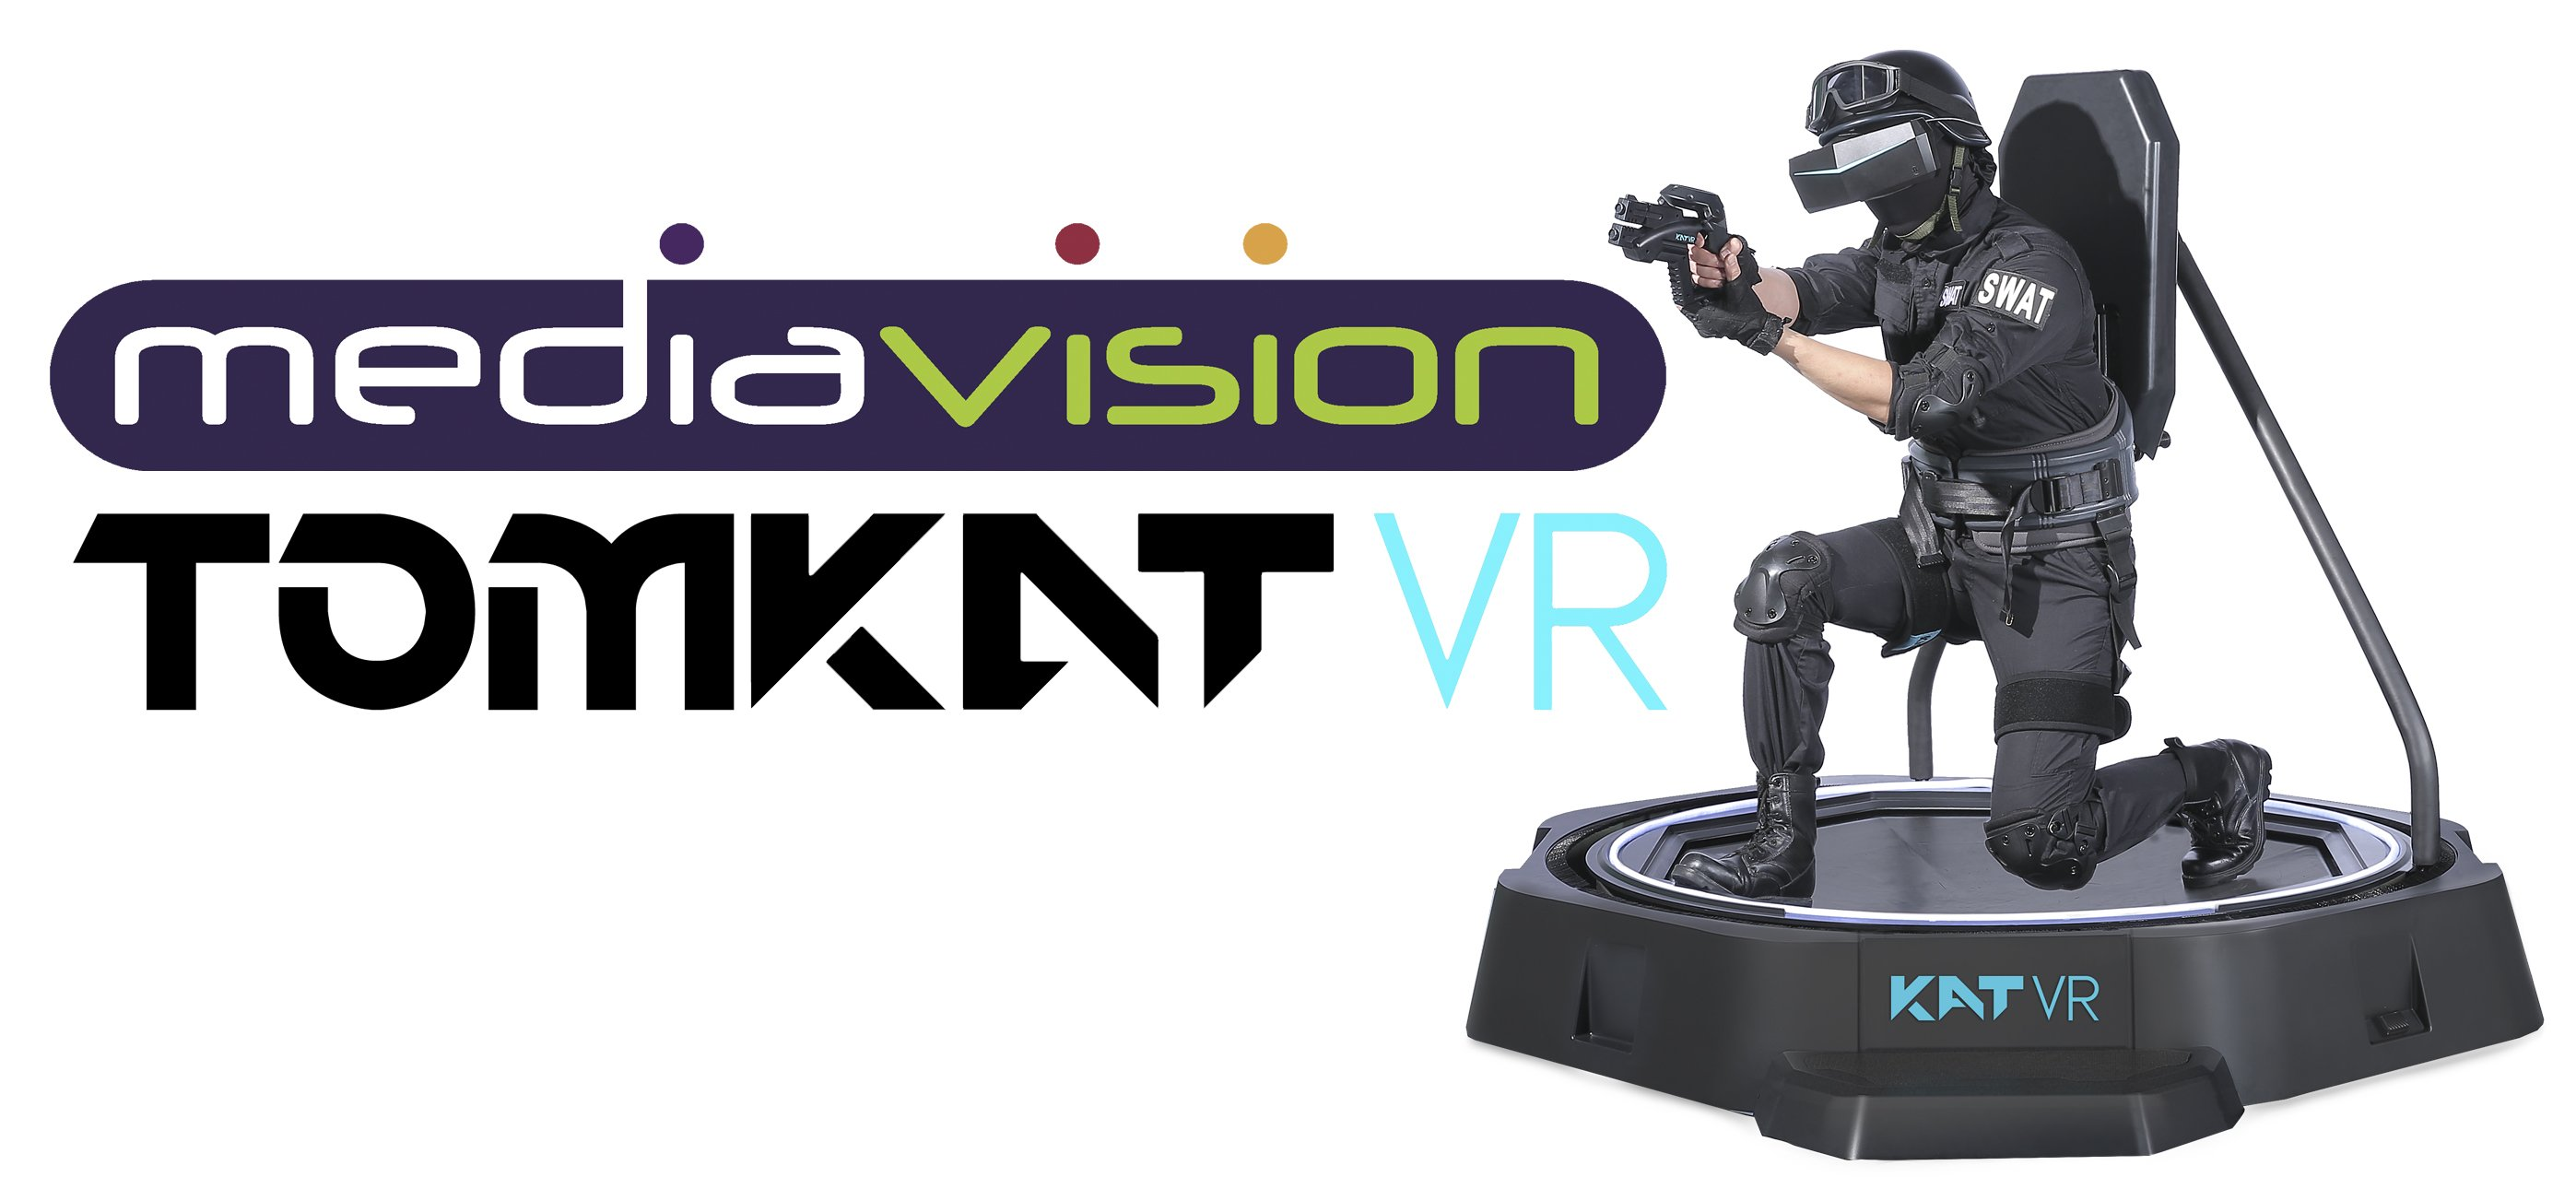 Media Vision Introduces TOMKAT VR